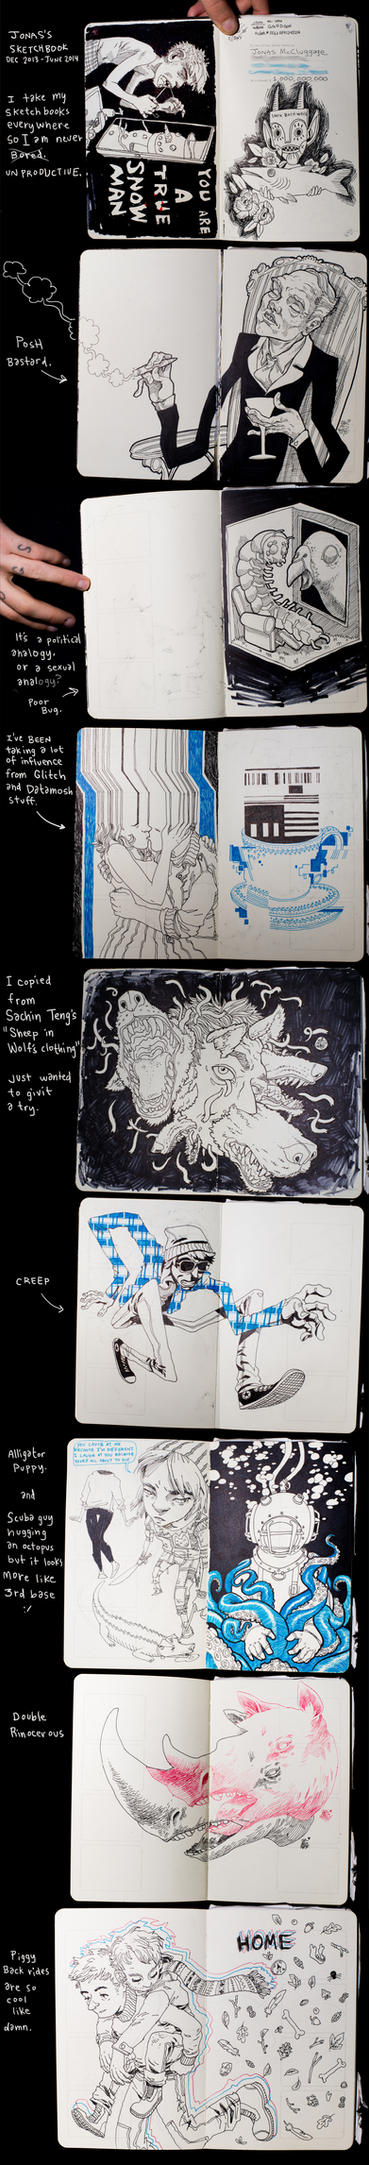 Moleskin sketches by 25mph